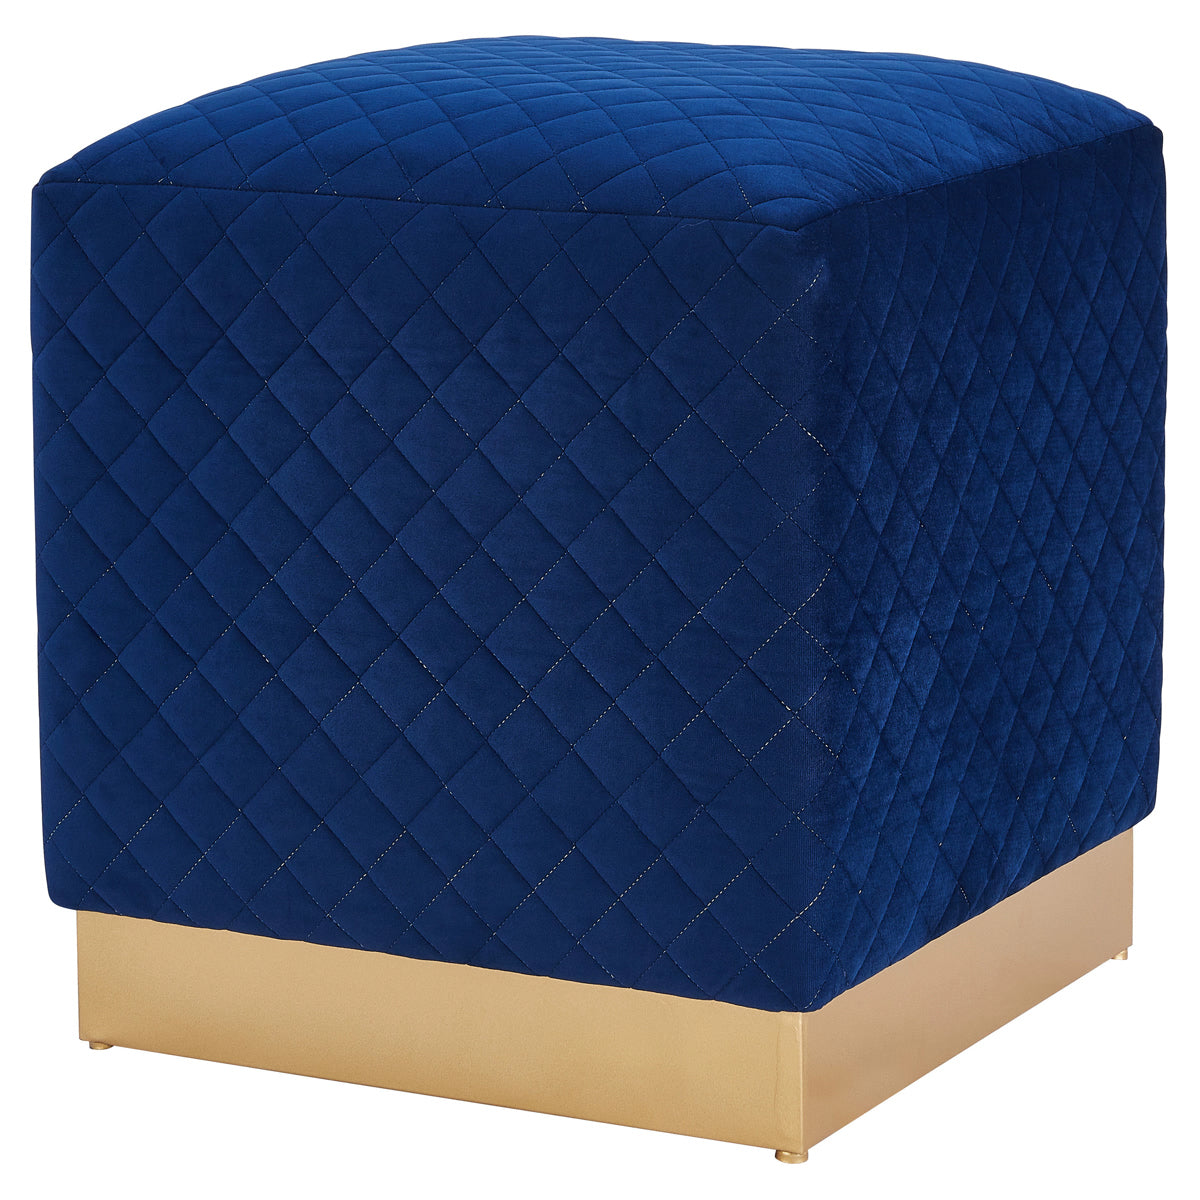 Dante Velvet Fabric Square Ottoman by New Pacific Direct - 1600040